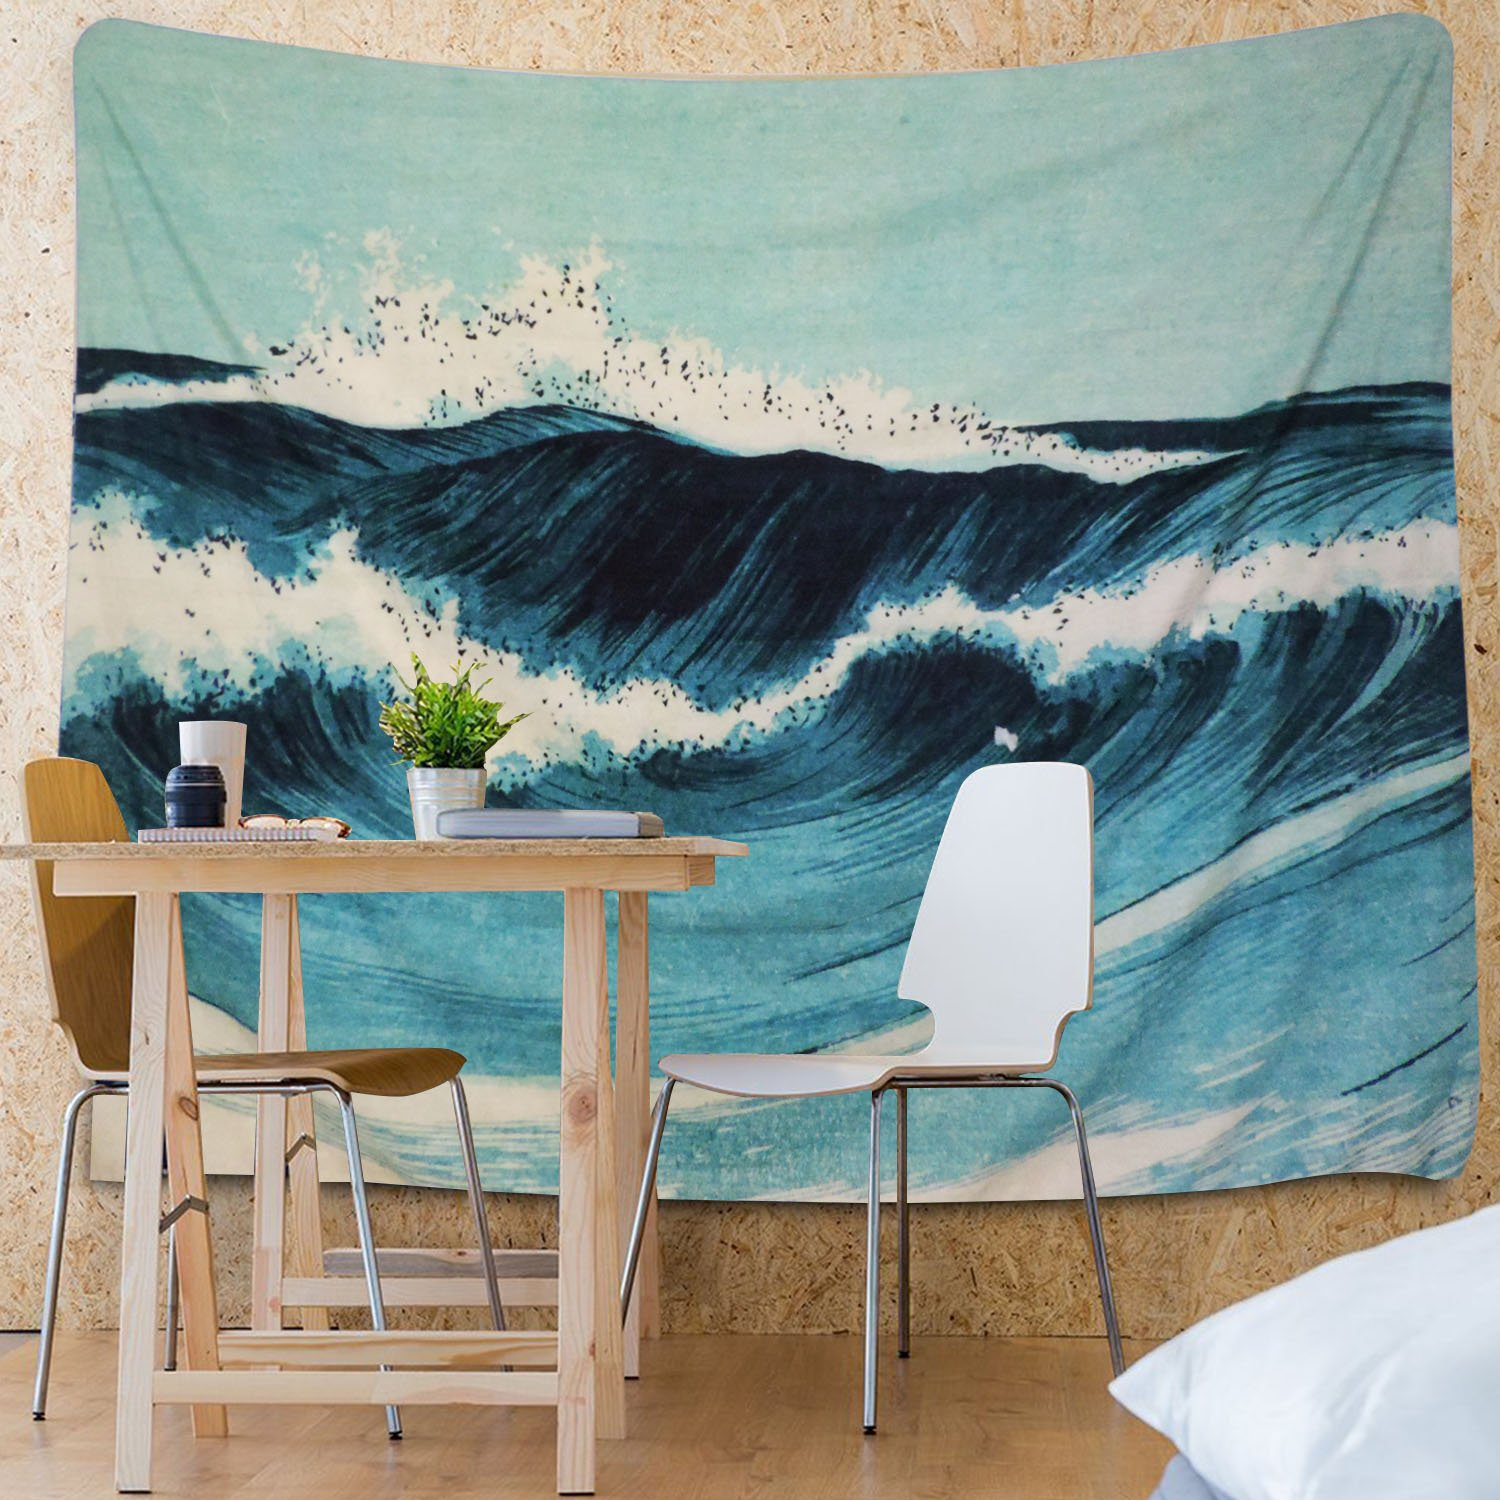 Martine Mall Tapestry Wall Tapestry Wall Hanging Tapestries Ocean Tapestry Wall Art Ocean Wave Decor Blue Indian Tapestry WallBlanketWallDecorWallArtHome Decor Wall Hanging Art 82 X 59 Inches